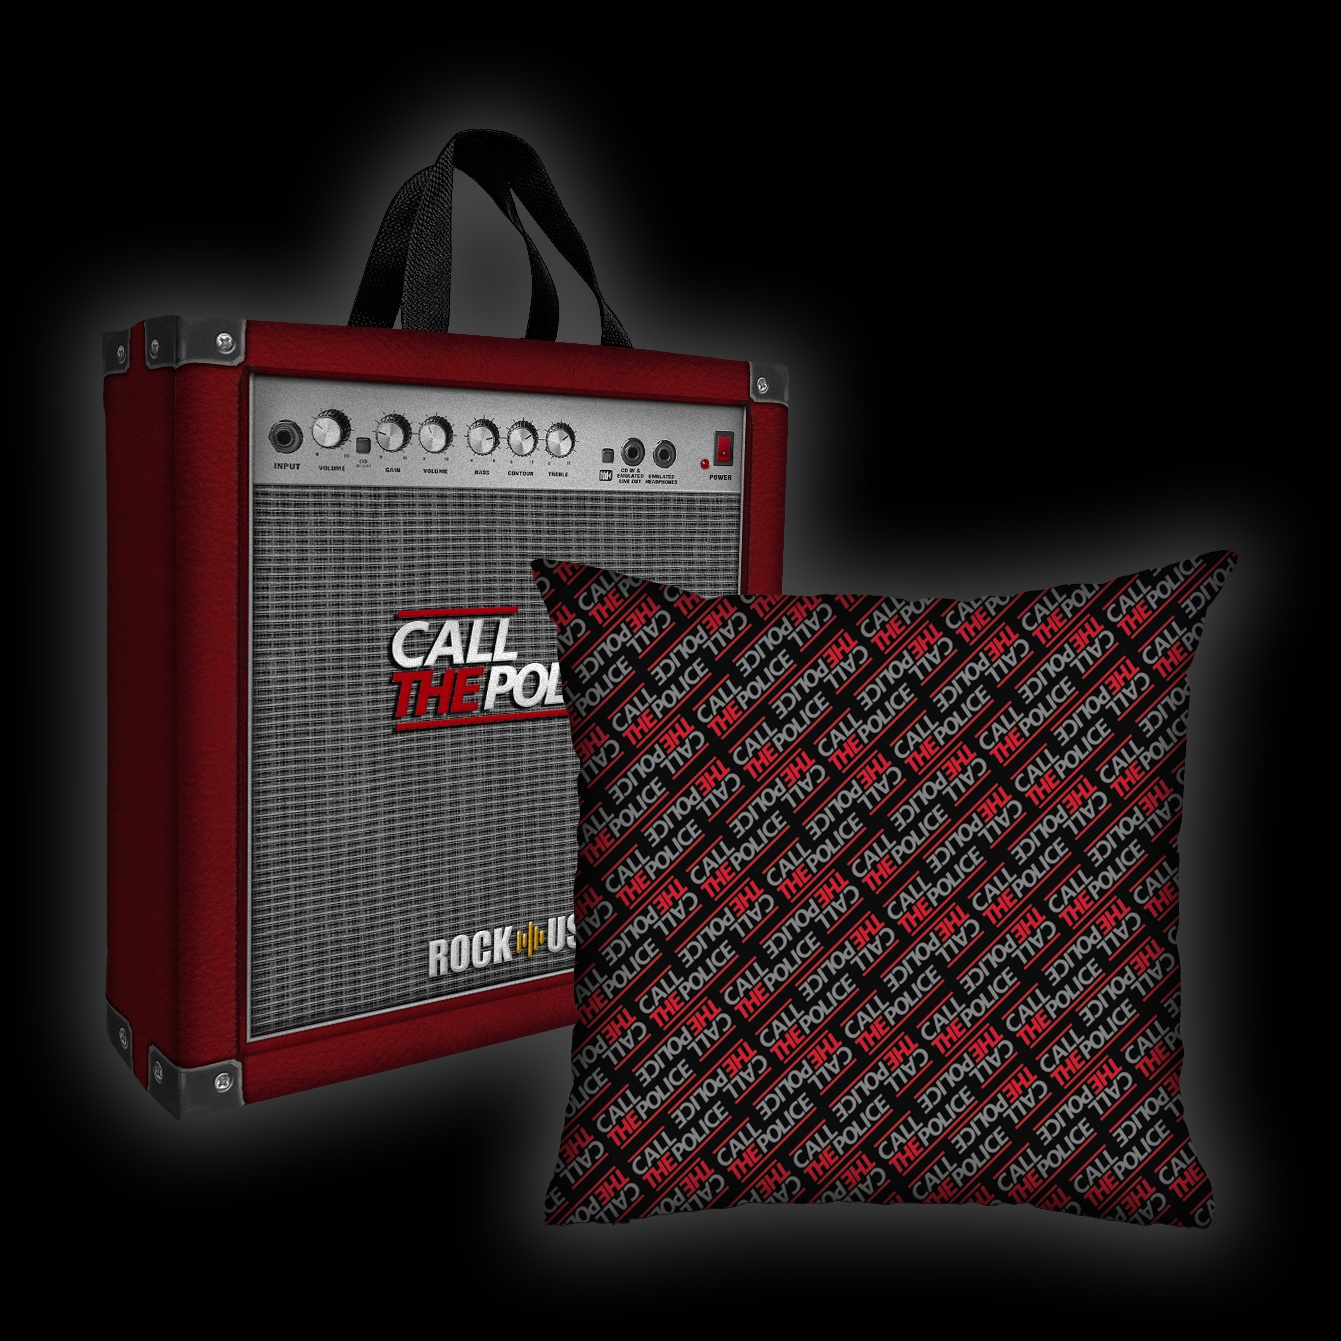 Kit Almofada + Sacola Call the Police - Wall (Black & Red)